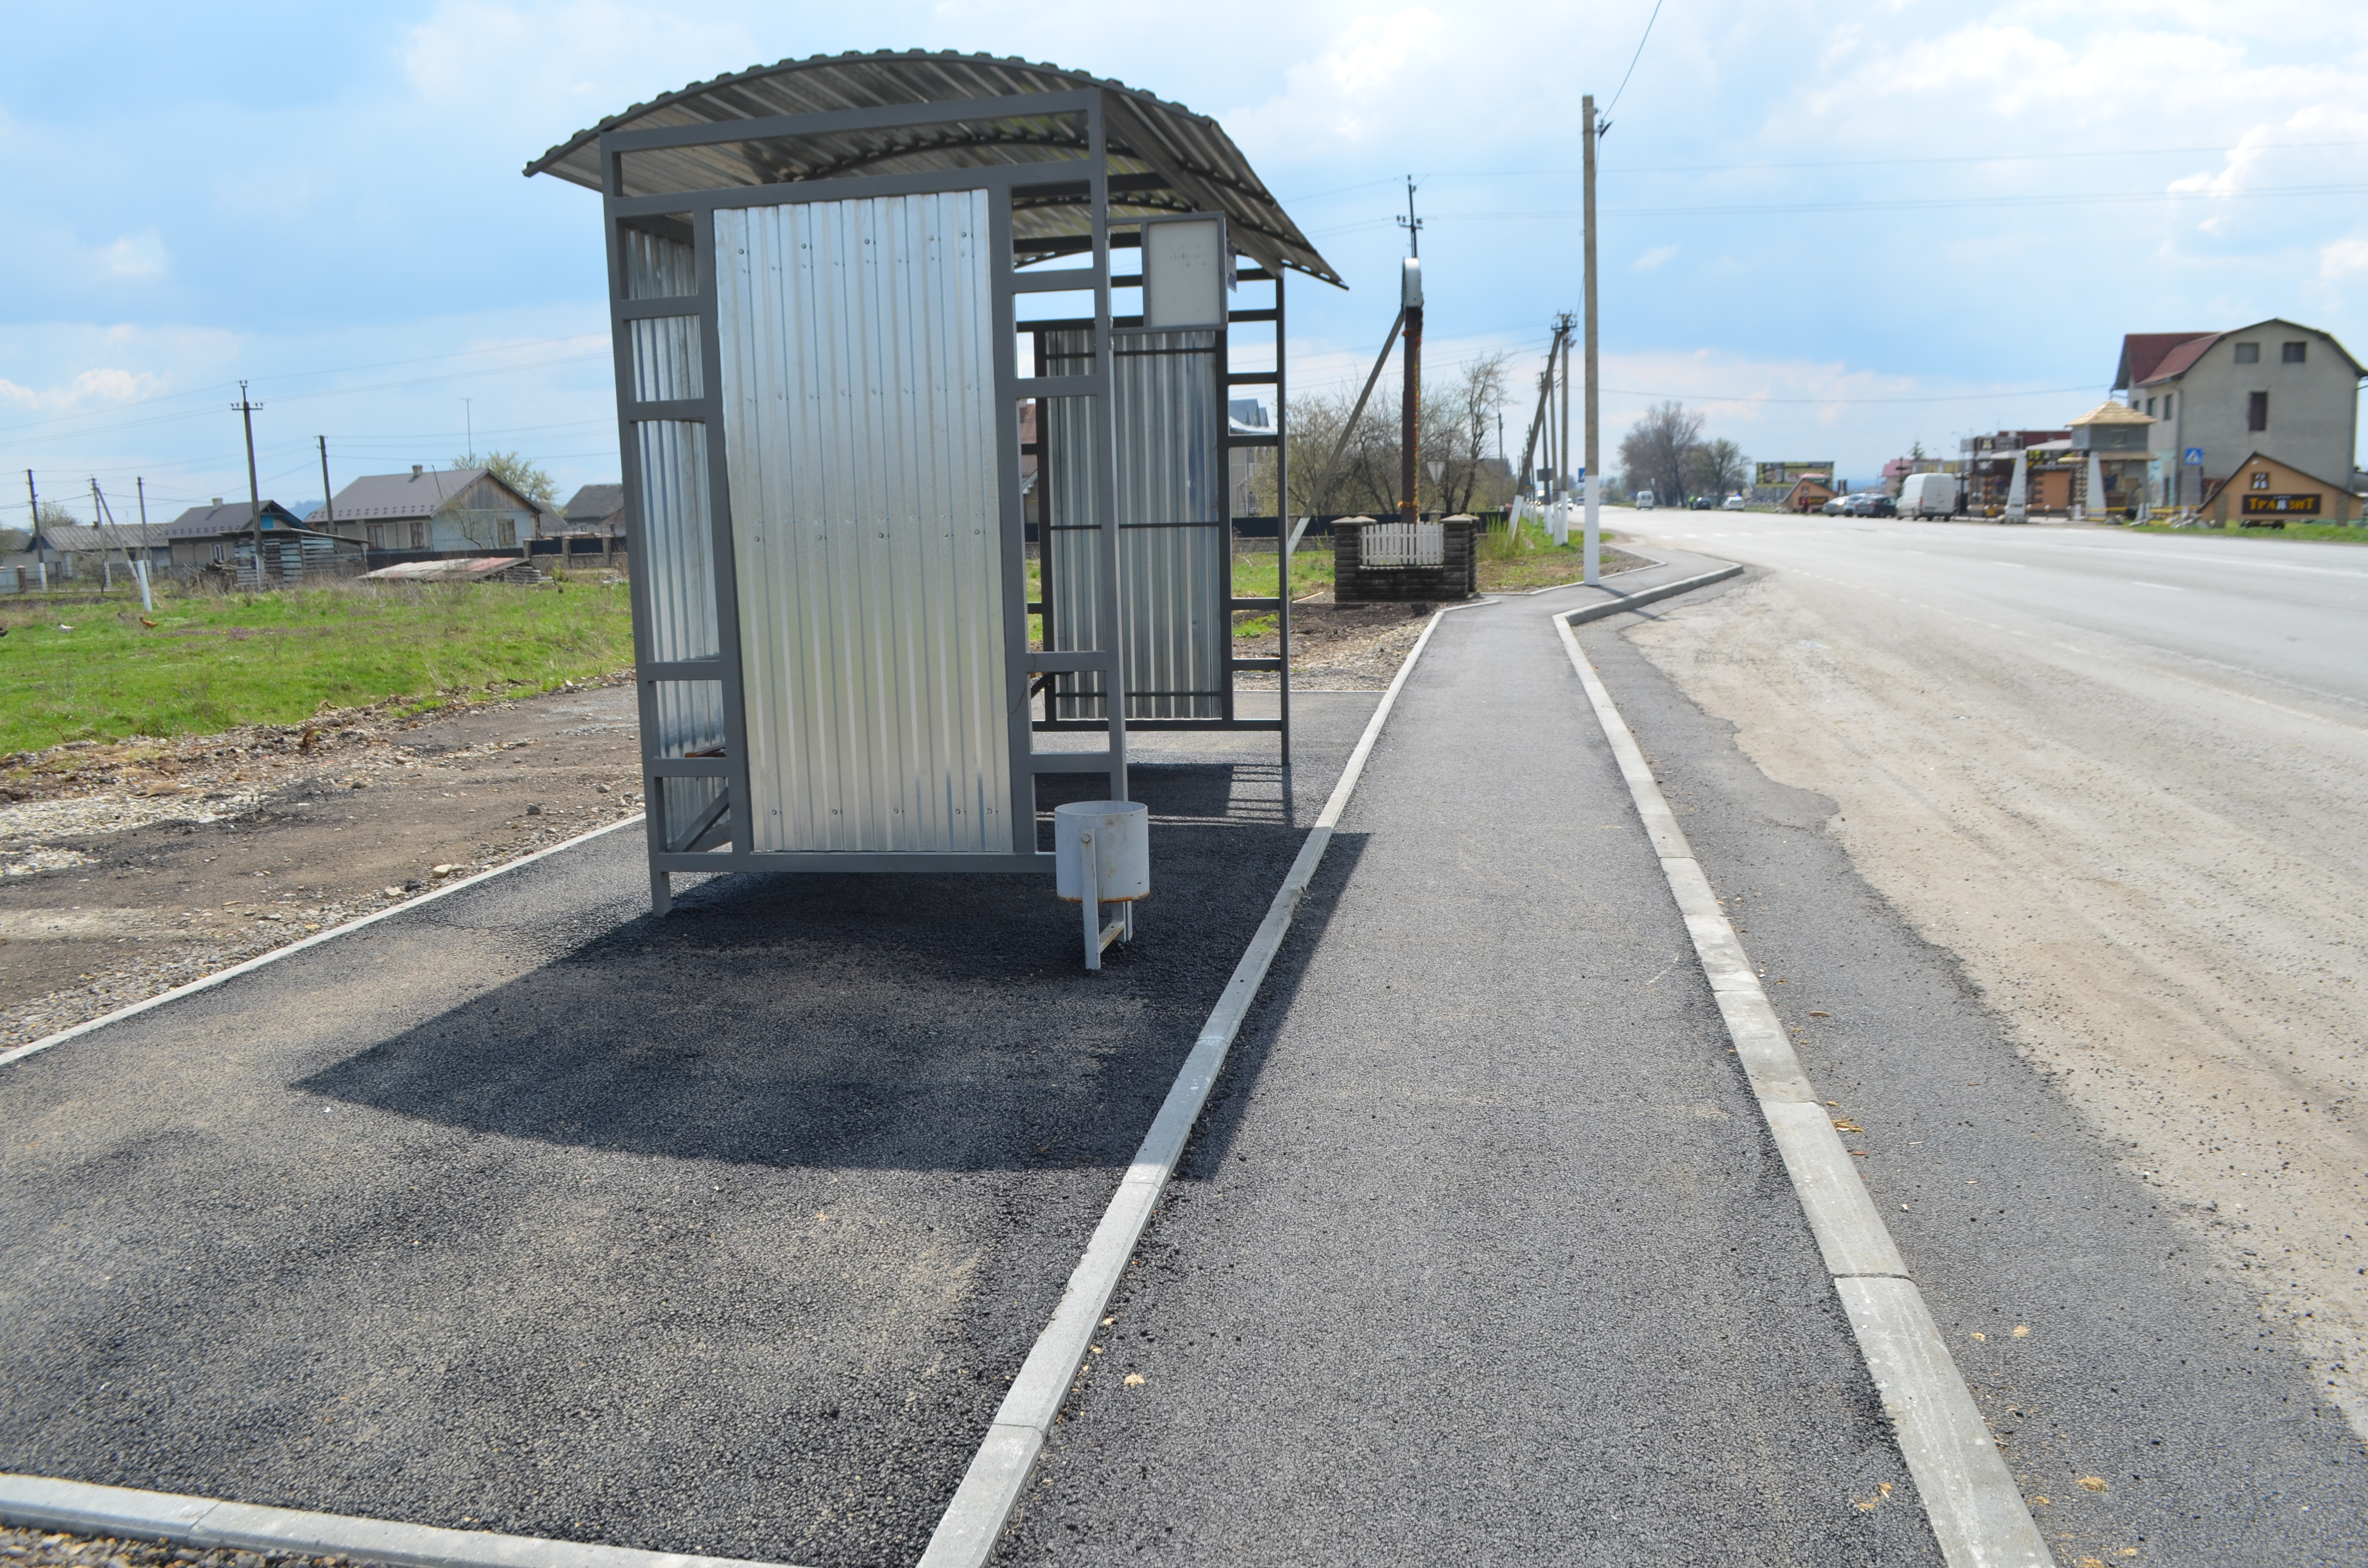 Two bus stops upgraded in Stari Kryvotuly